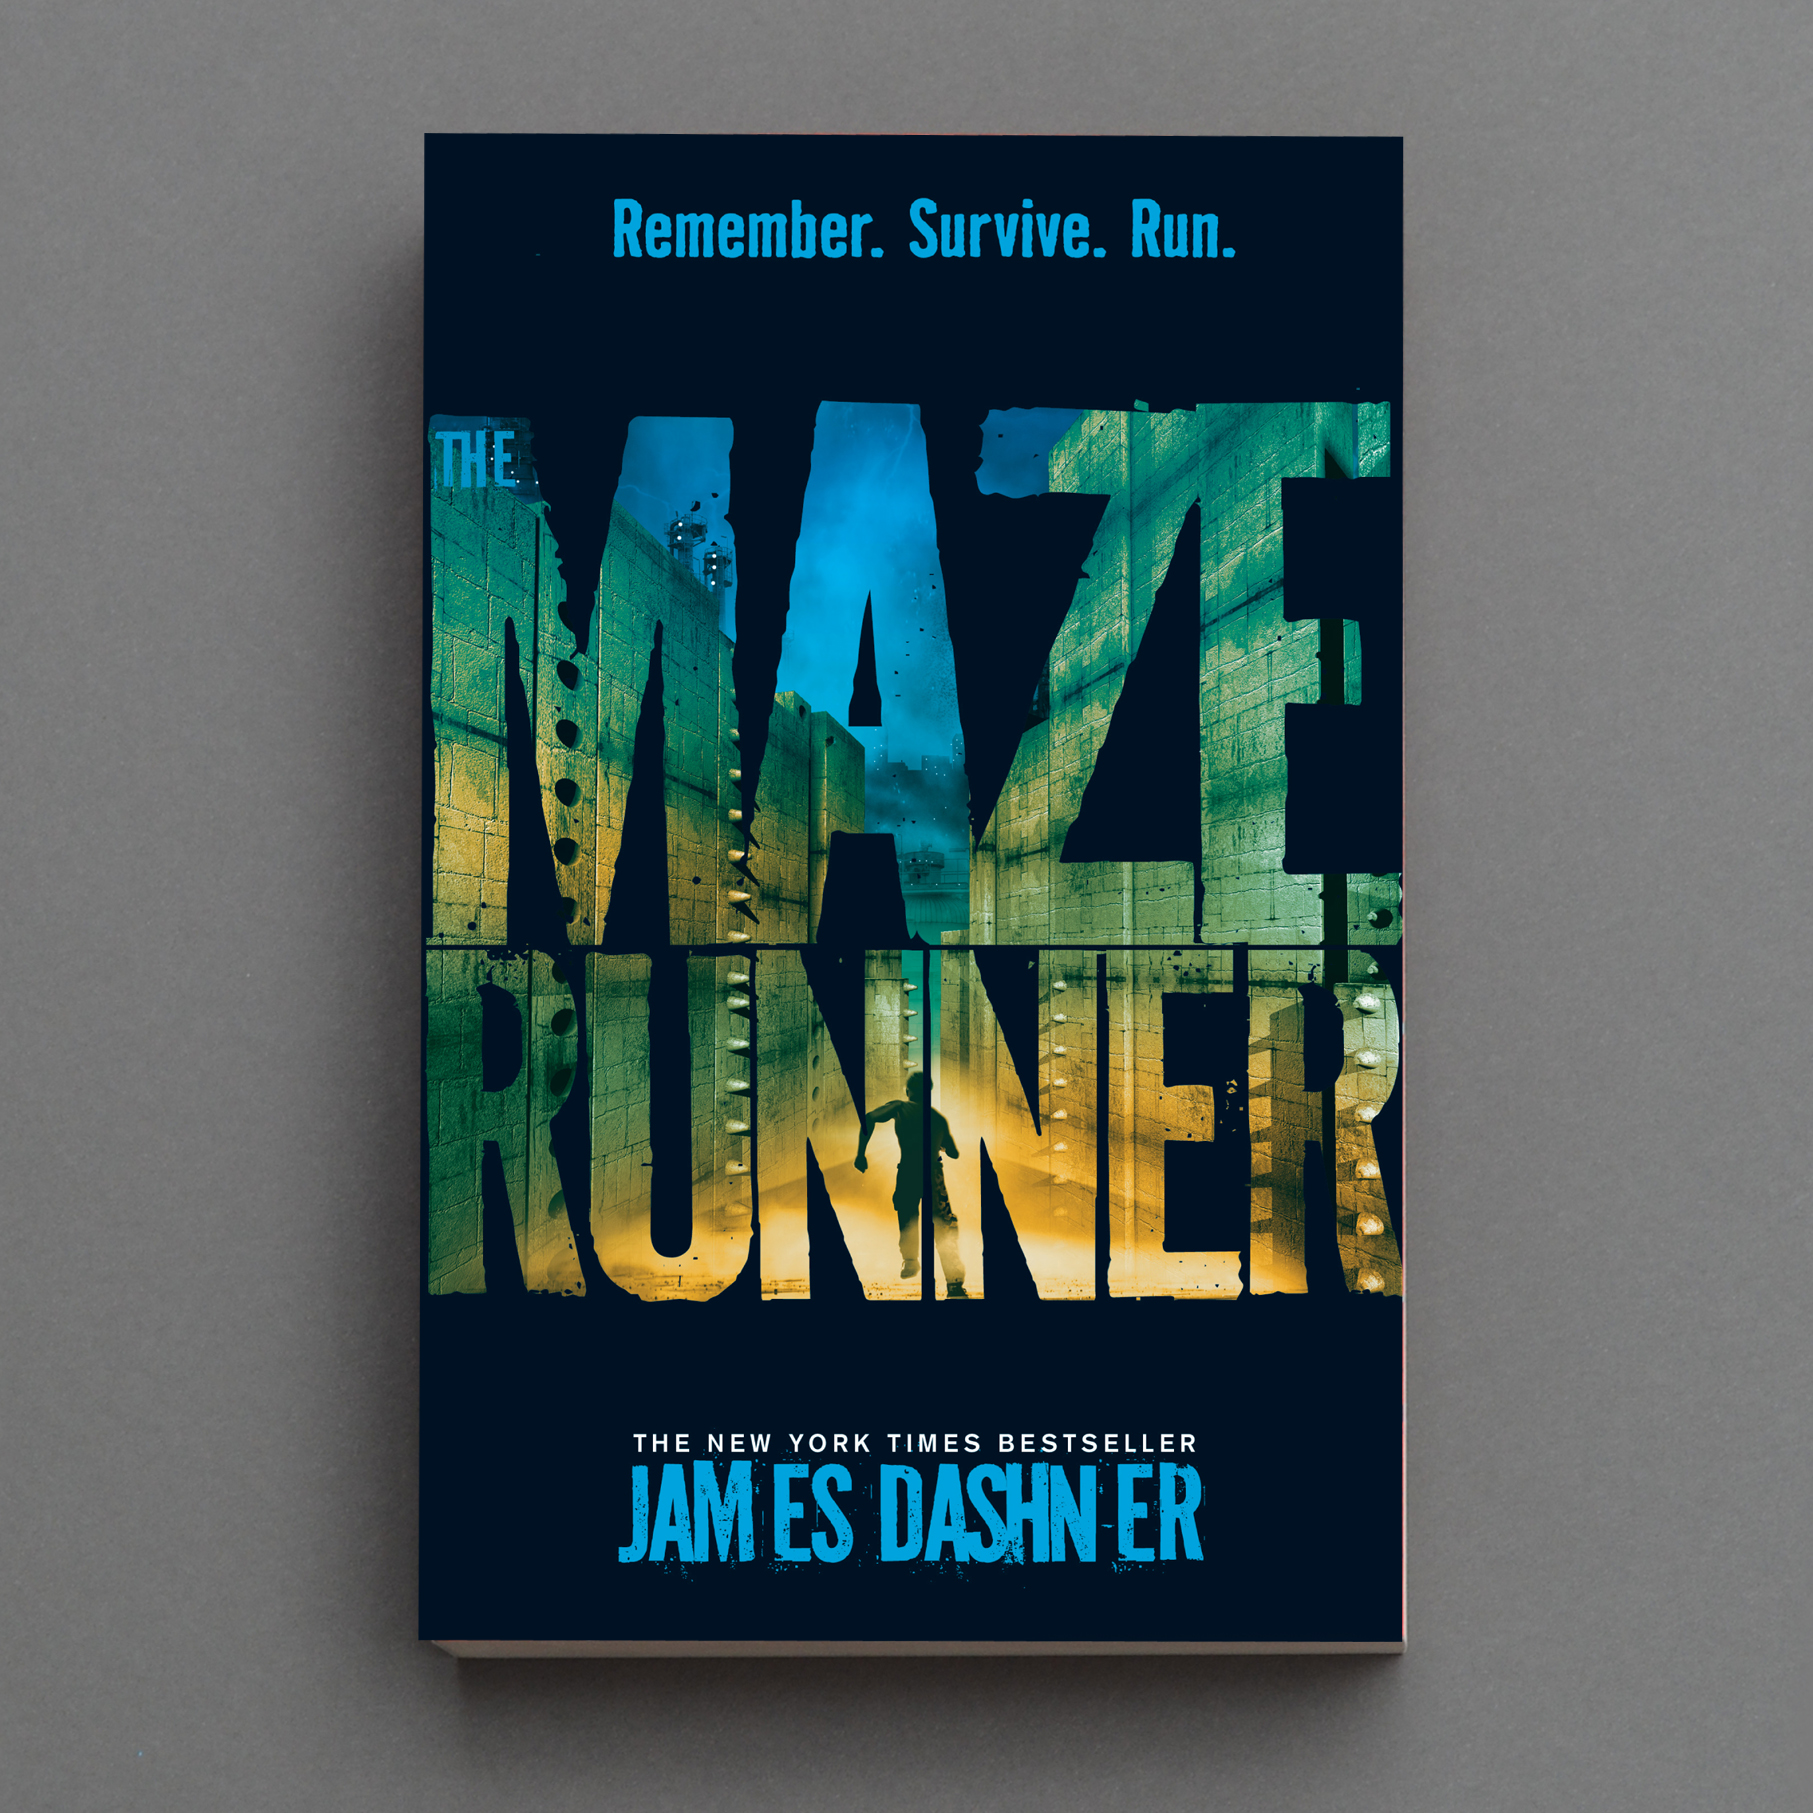 The bestseller Maze Runner – over 500,000 copies have been sold in this editoin alone.